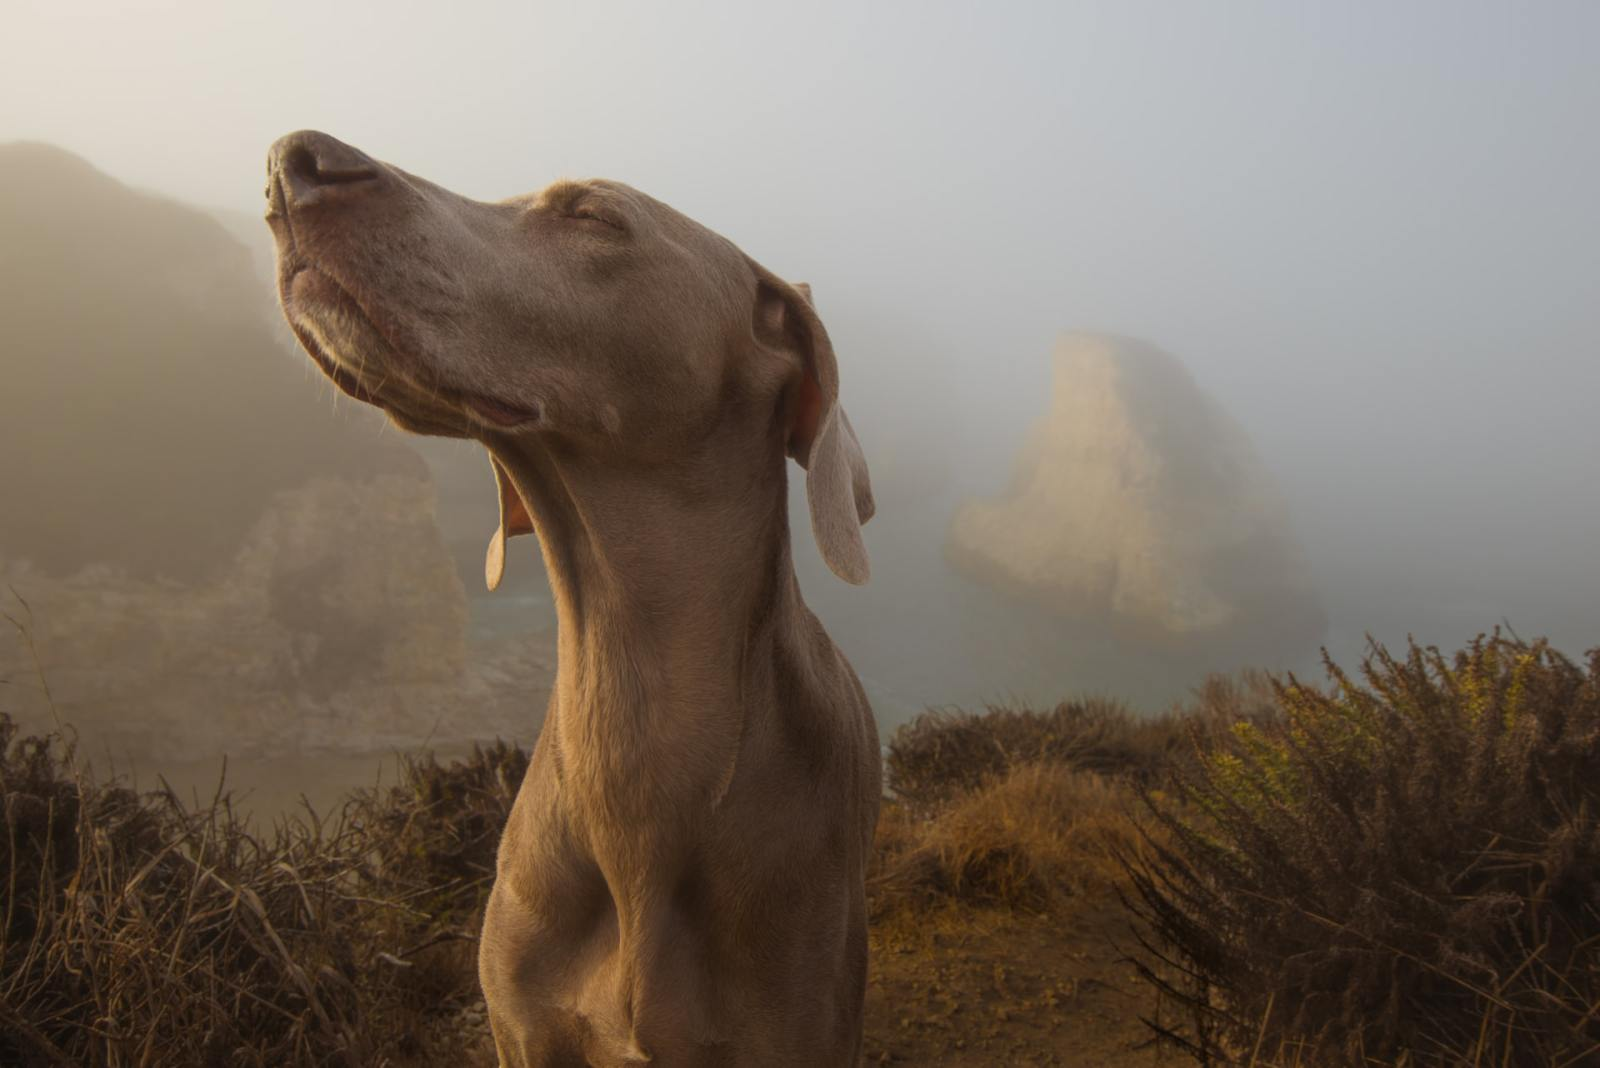 A hound dog sniffing the air for a scent